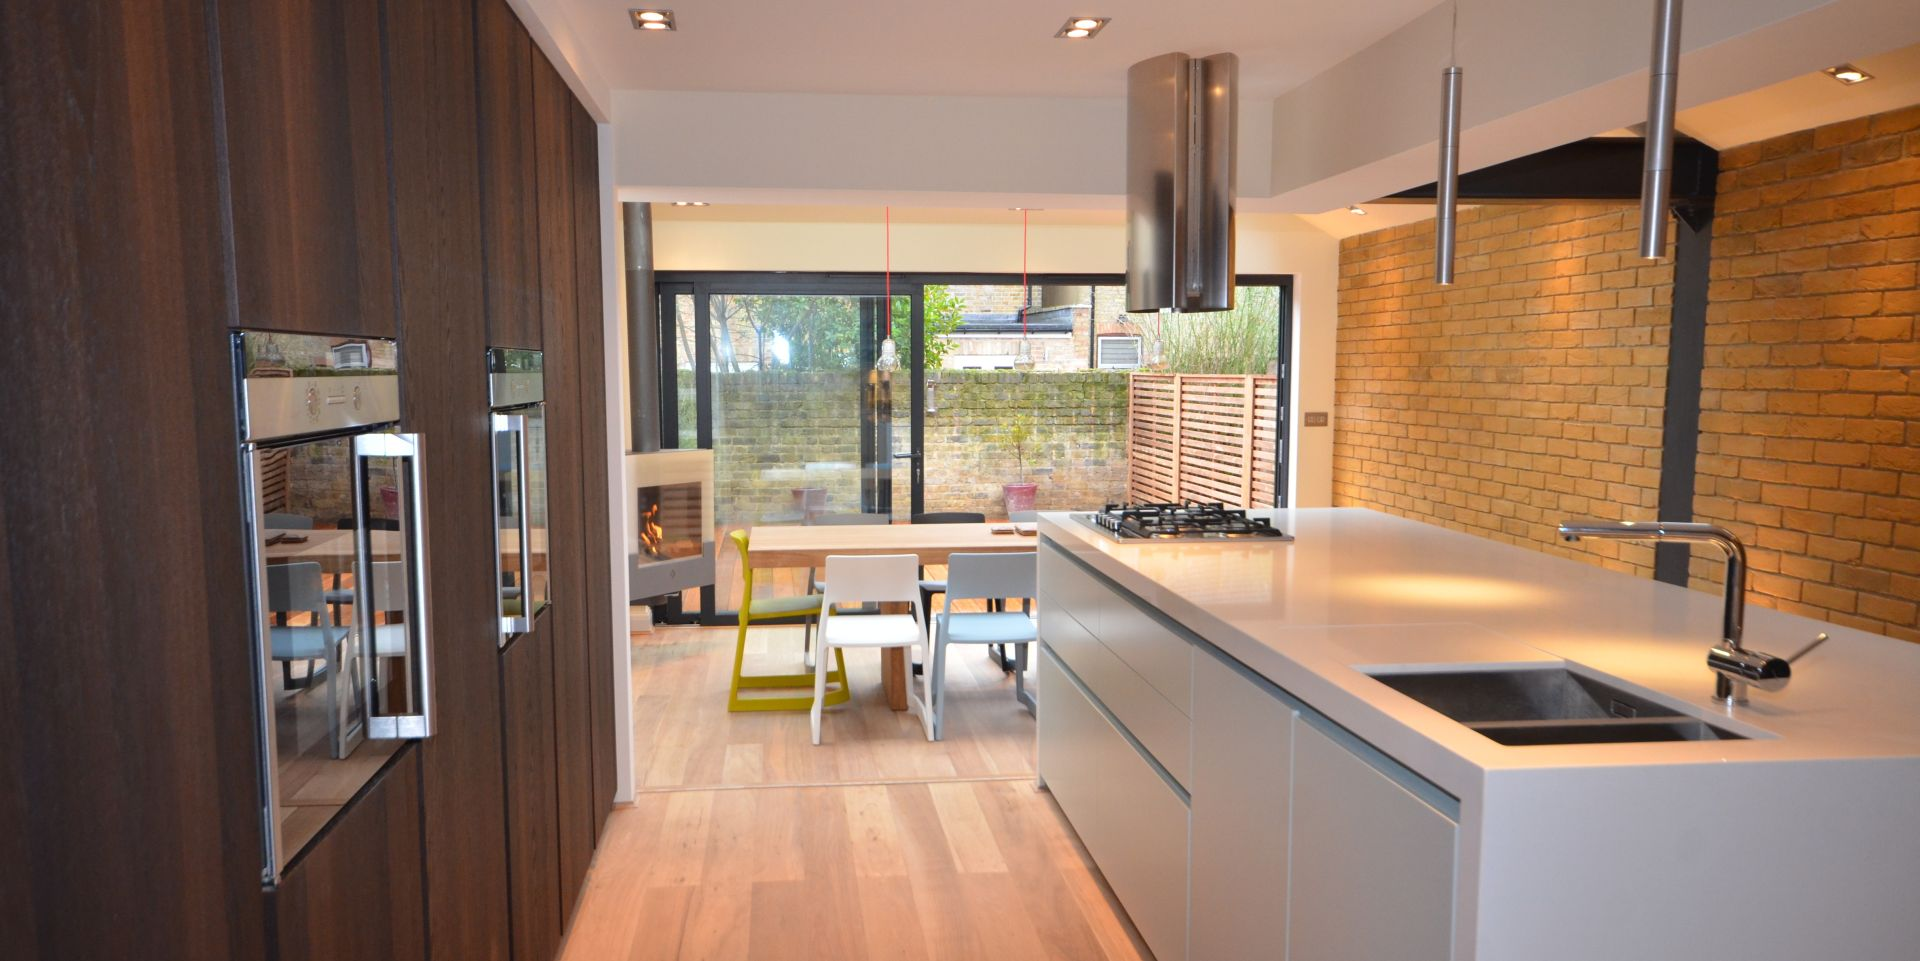 Residential design build extension in ealing london for Kitchen ideas ealing